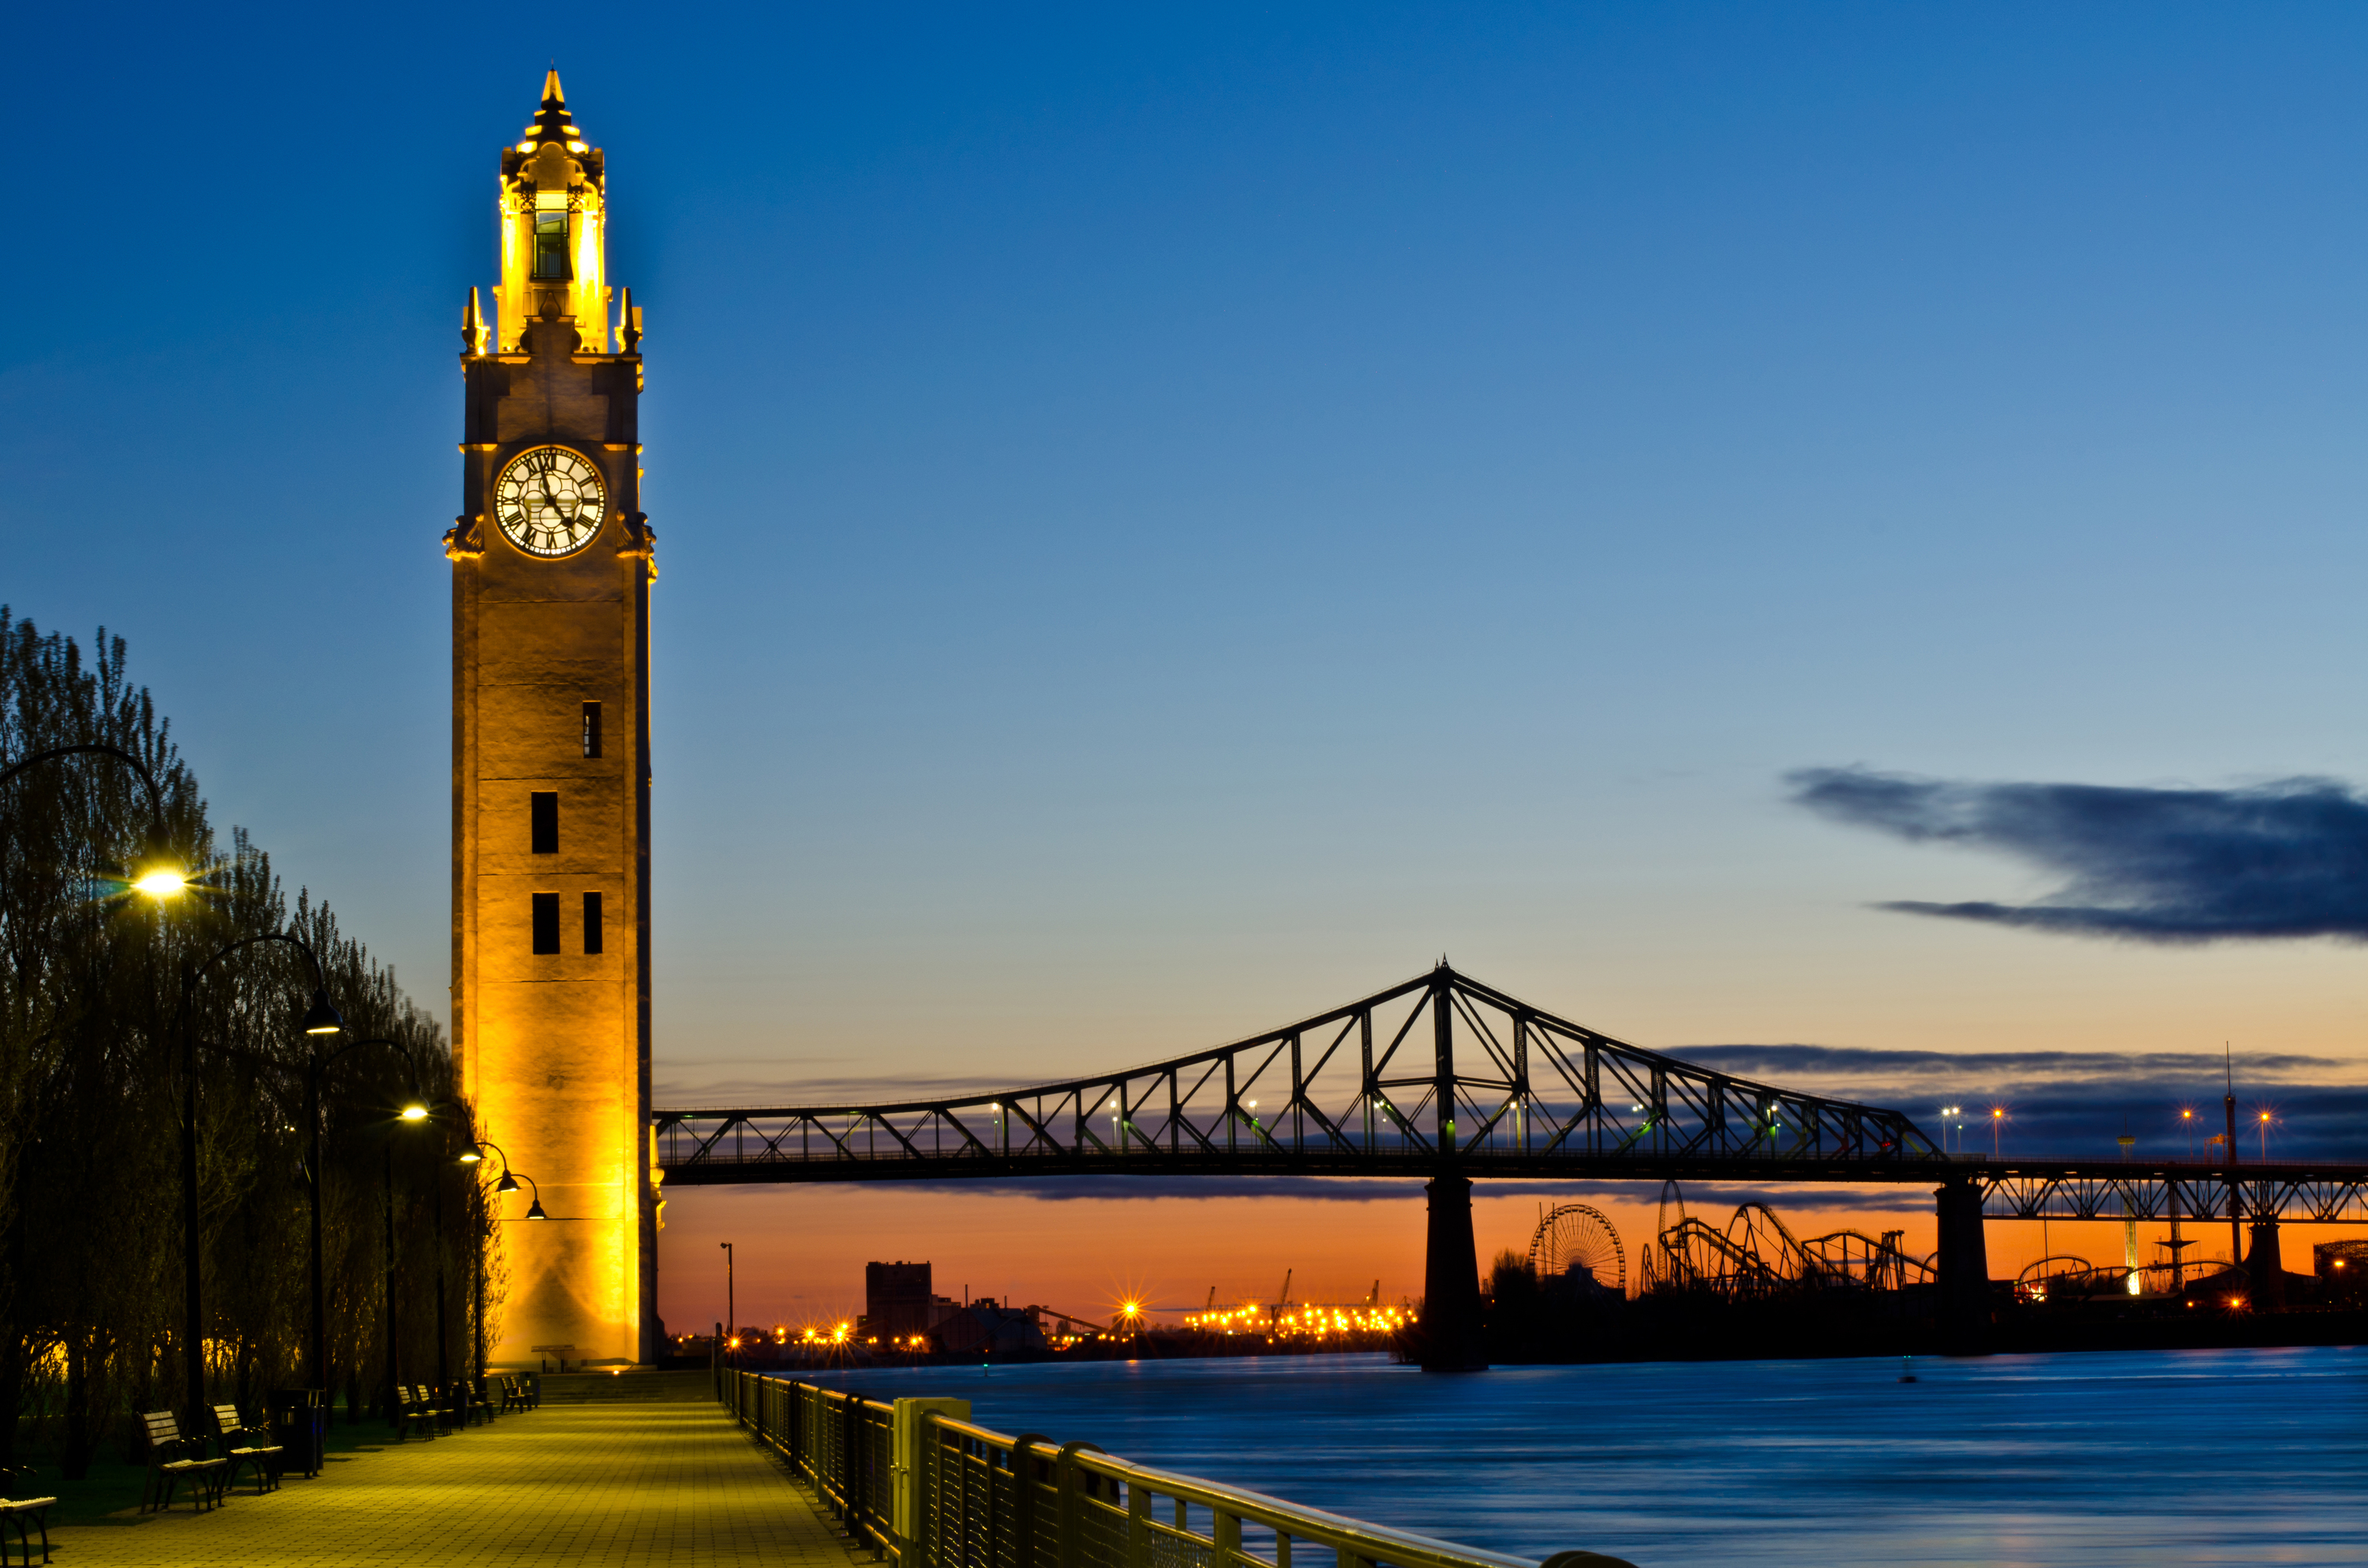 The Clock Tower and The Jacques-Cartier Bridge / Tour de l'Horloge et Le pont Jacques-Cartier